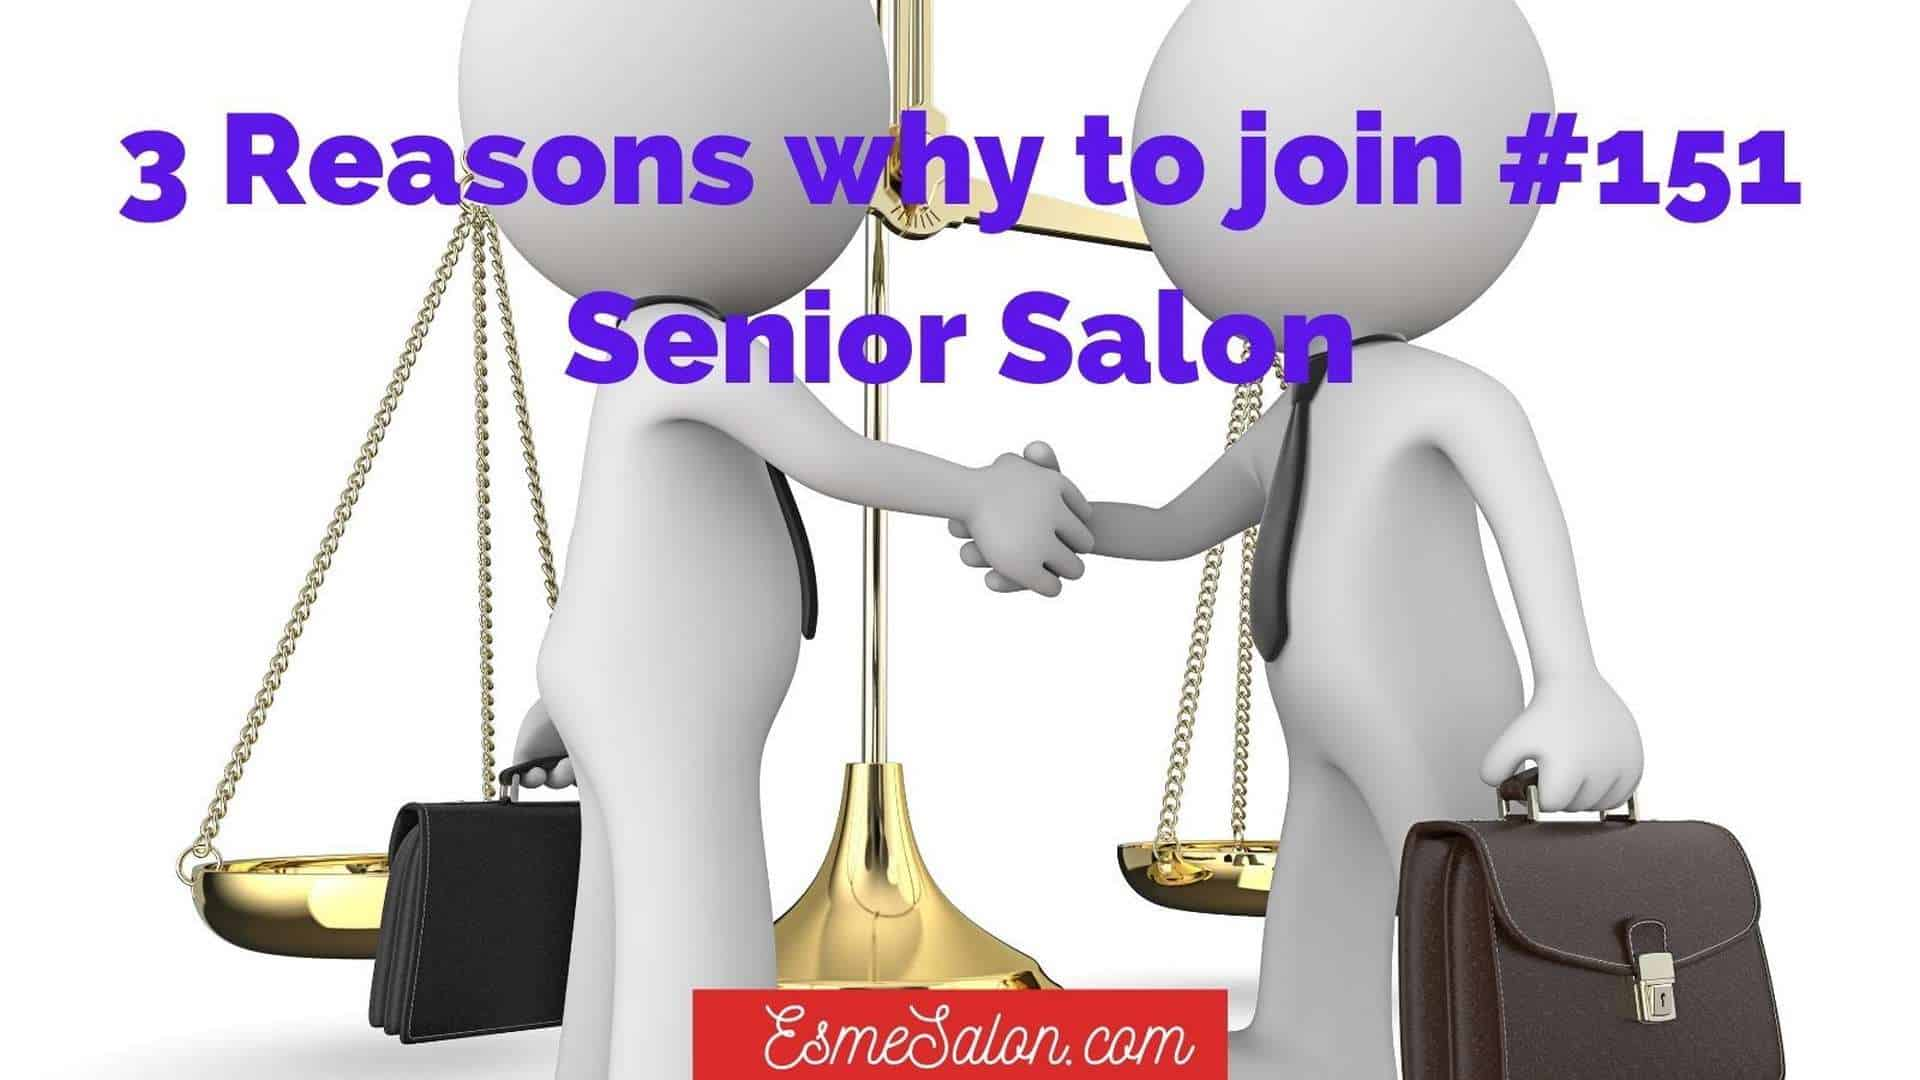 3 Reasons why to join #151 SeniSal